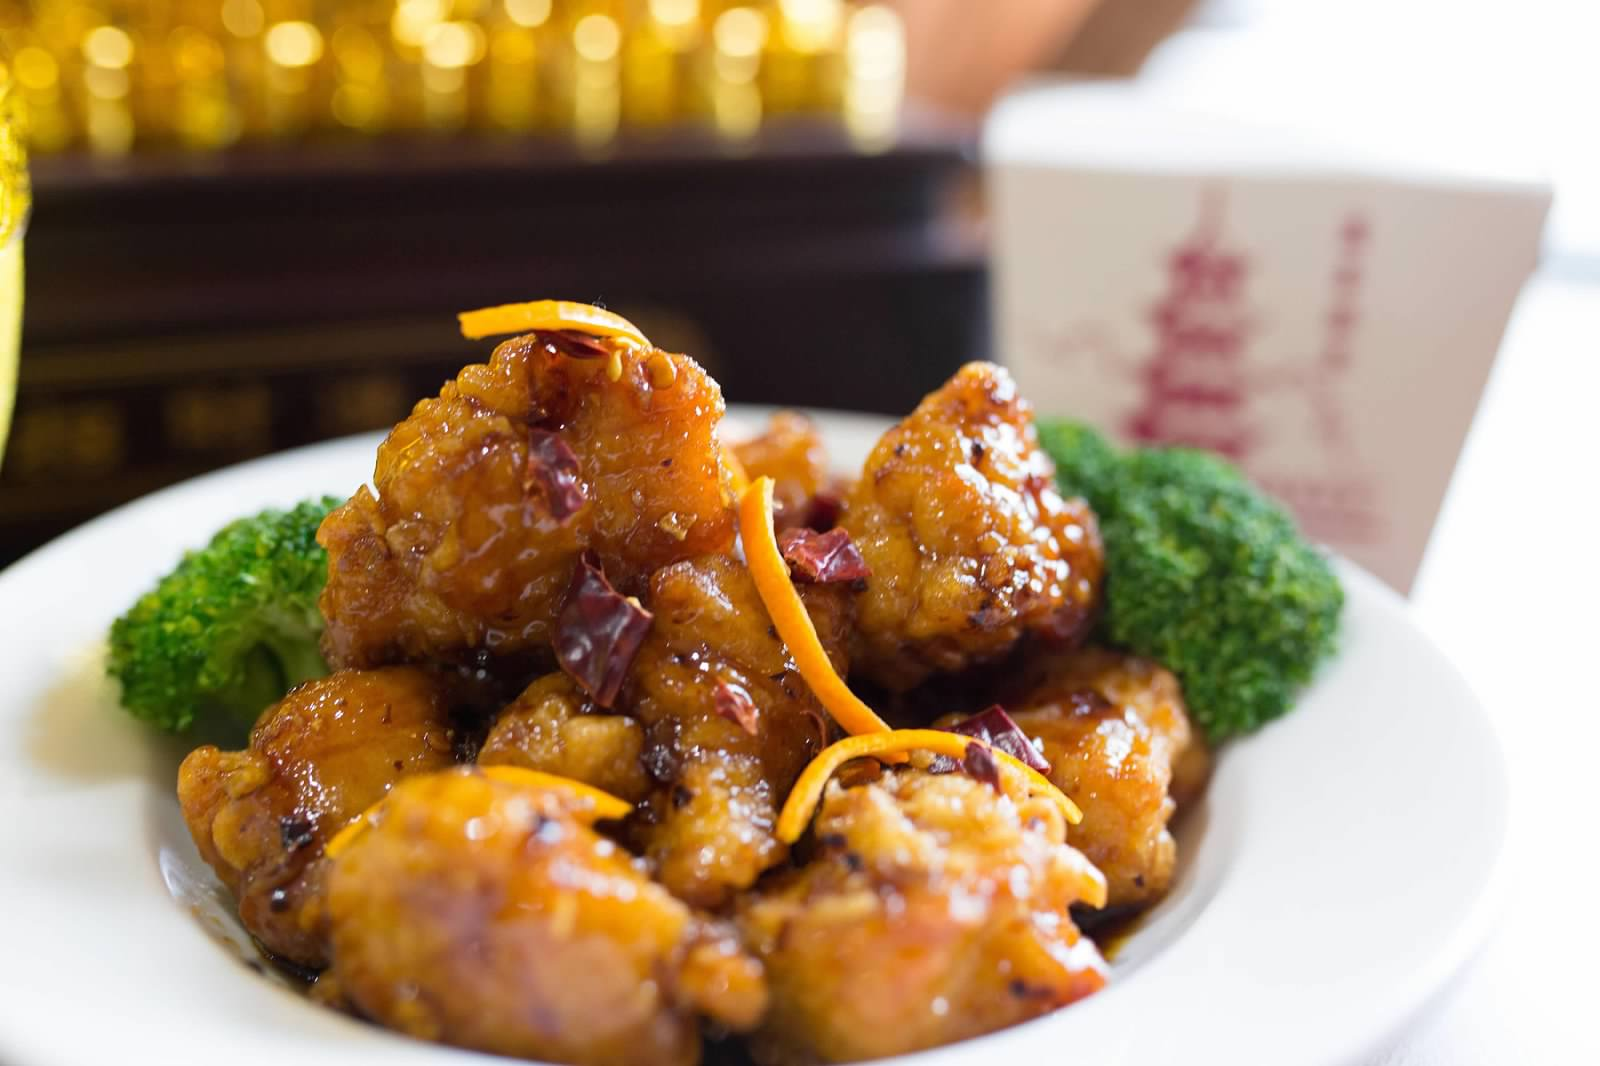 C13. Orange Chicken Image